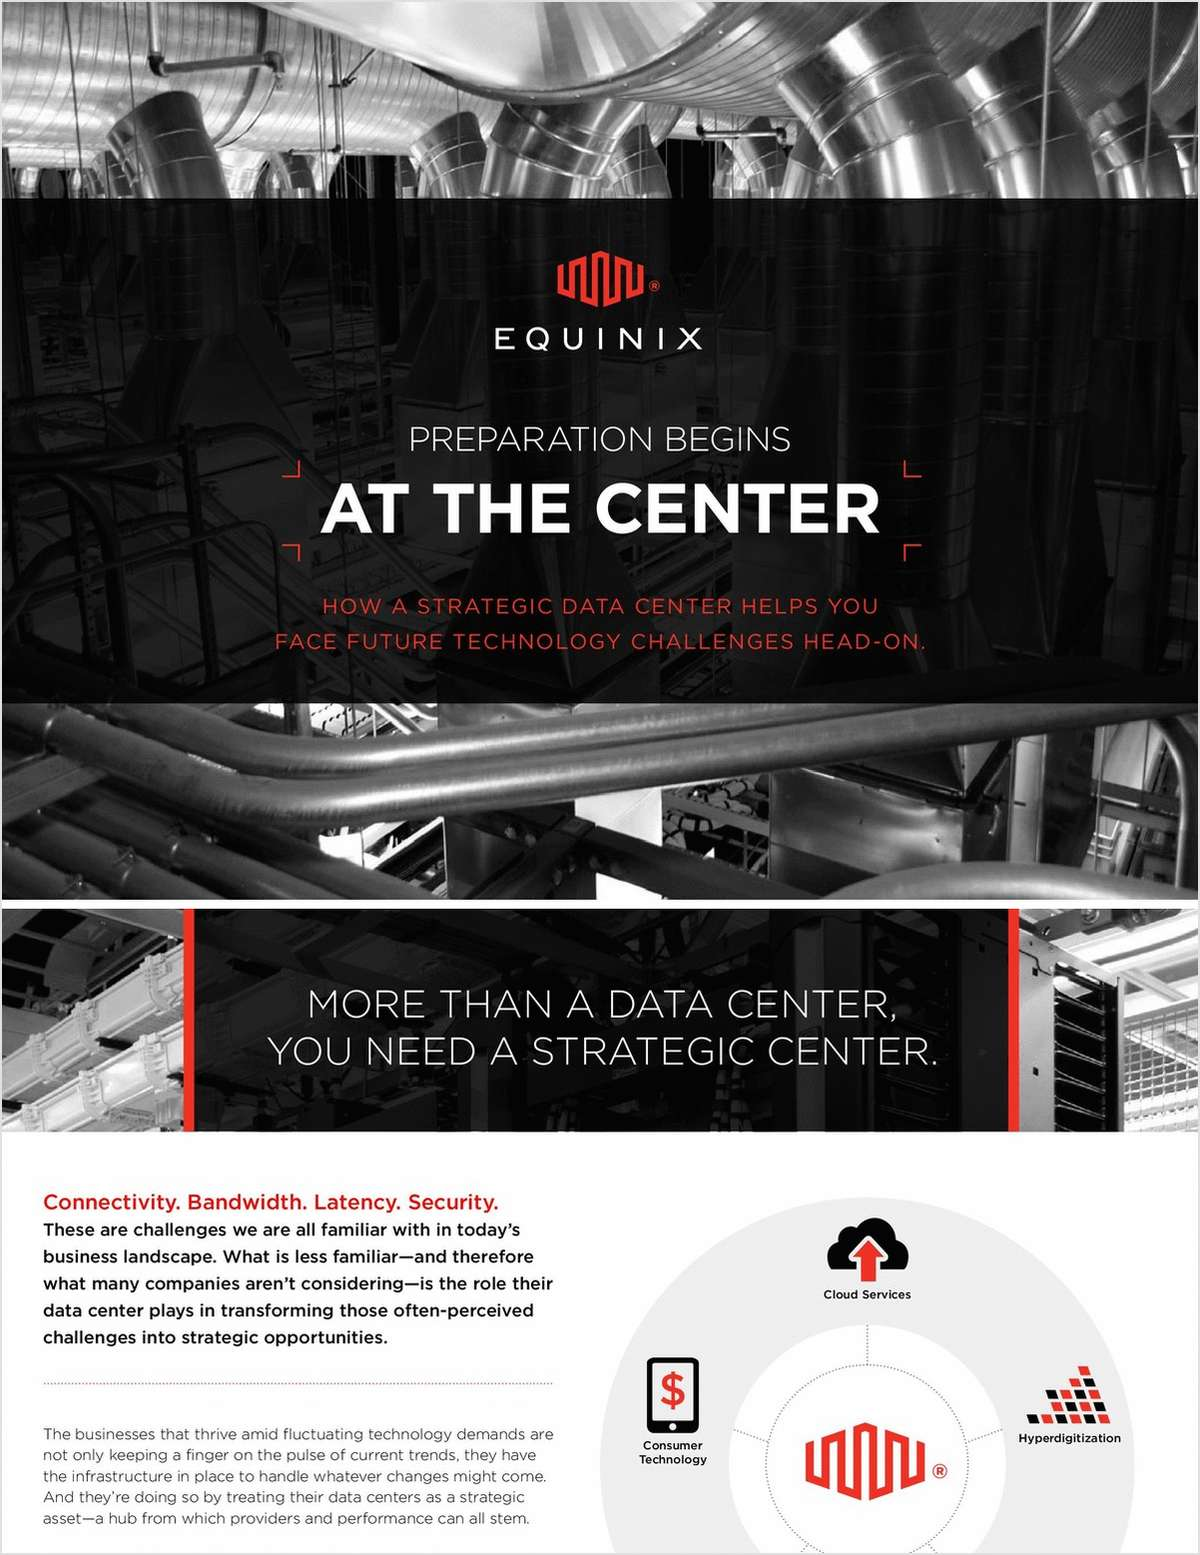 FACE FUTURE TECHNOLOGY CHALLENGES HEAD ON WITH A STRATEGIC DATA CENTER